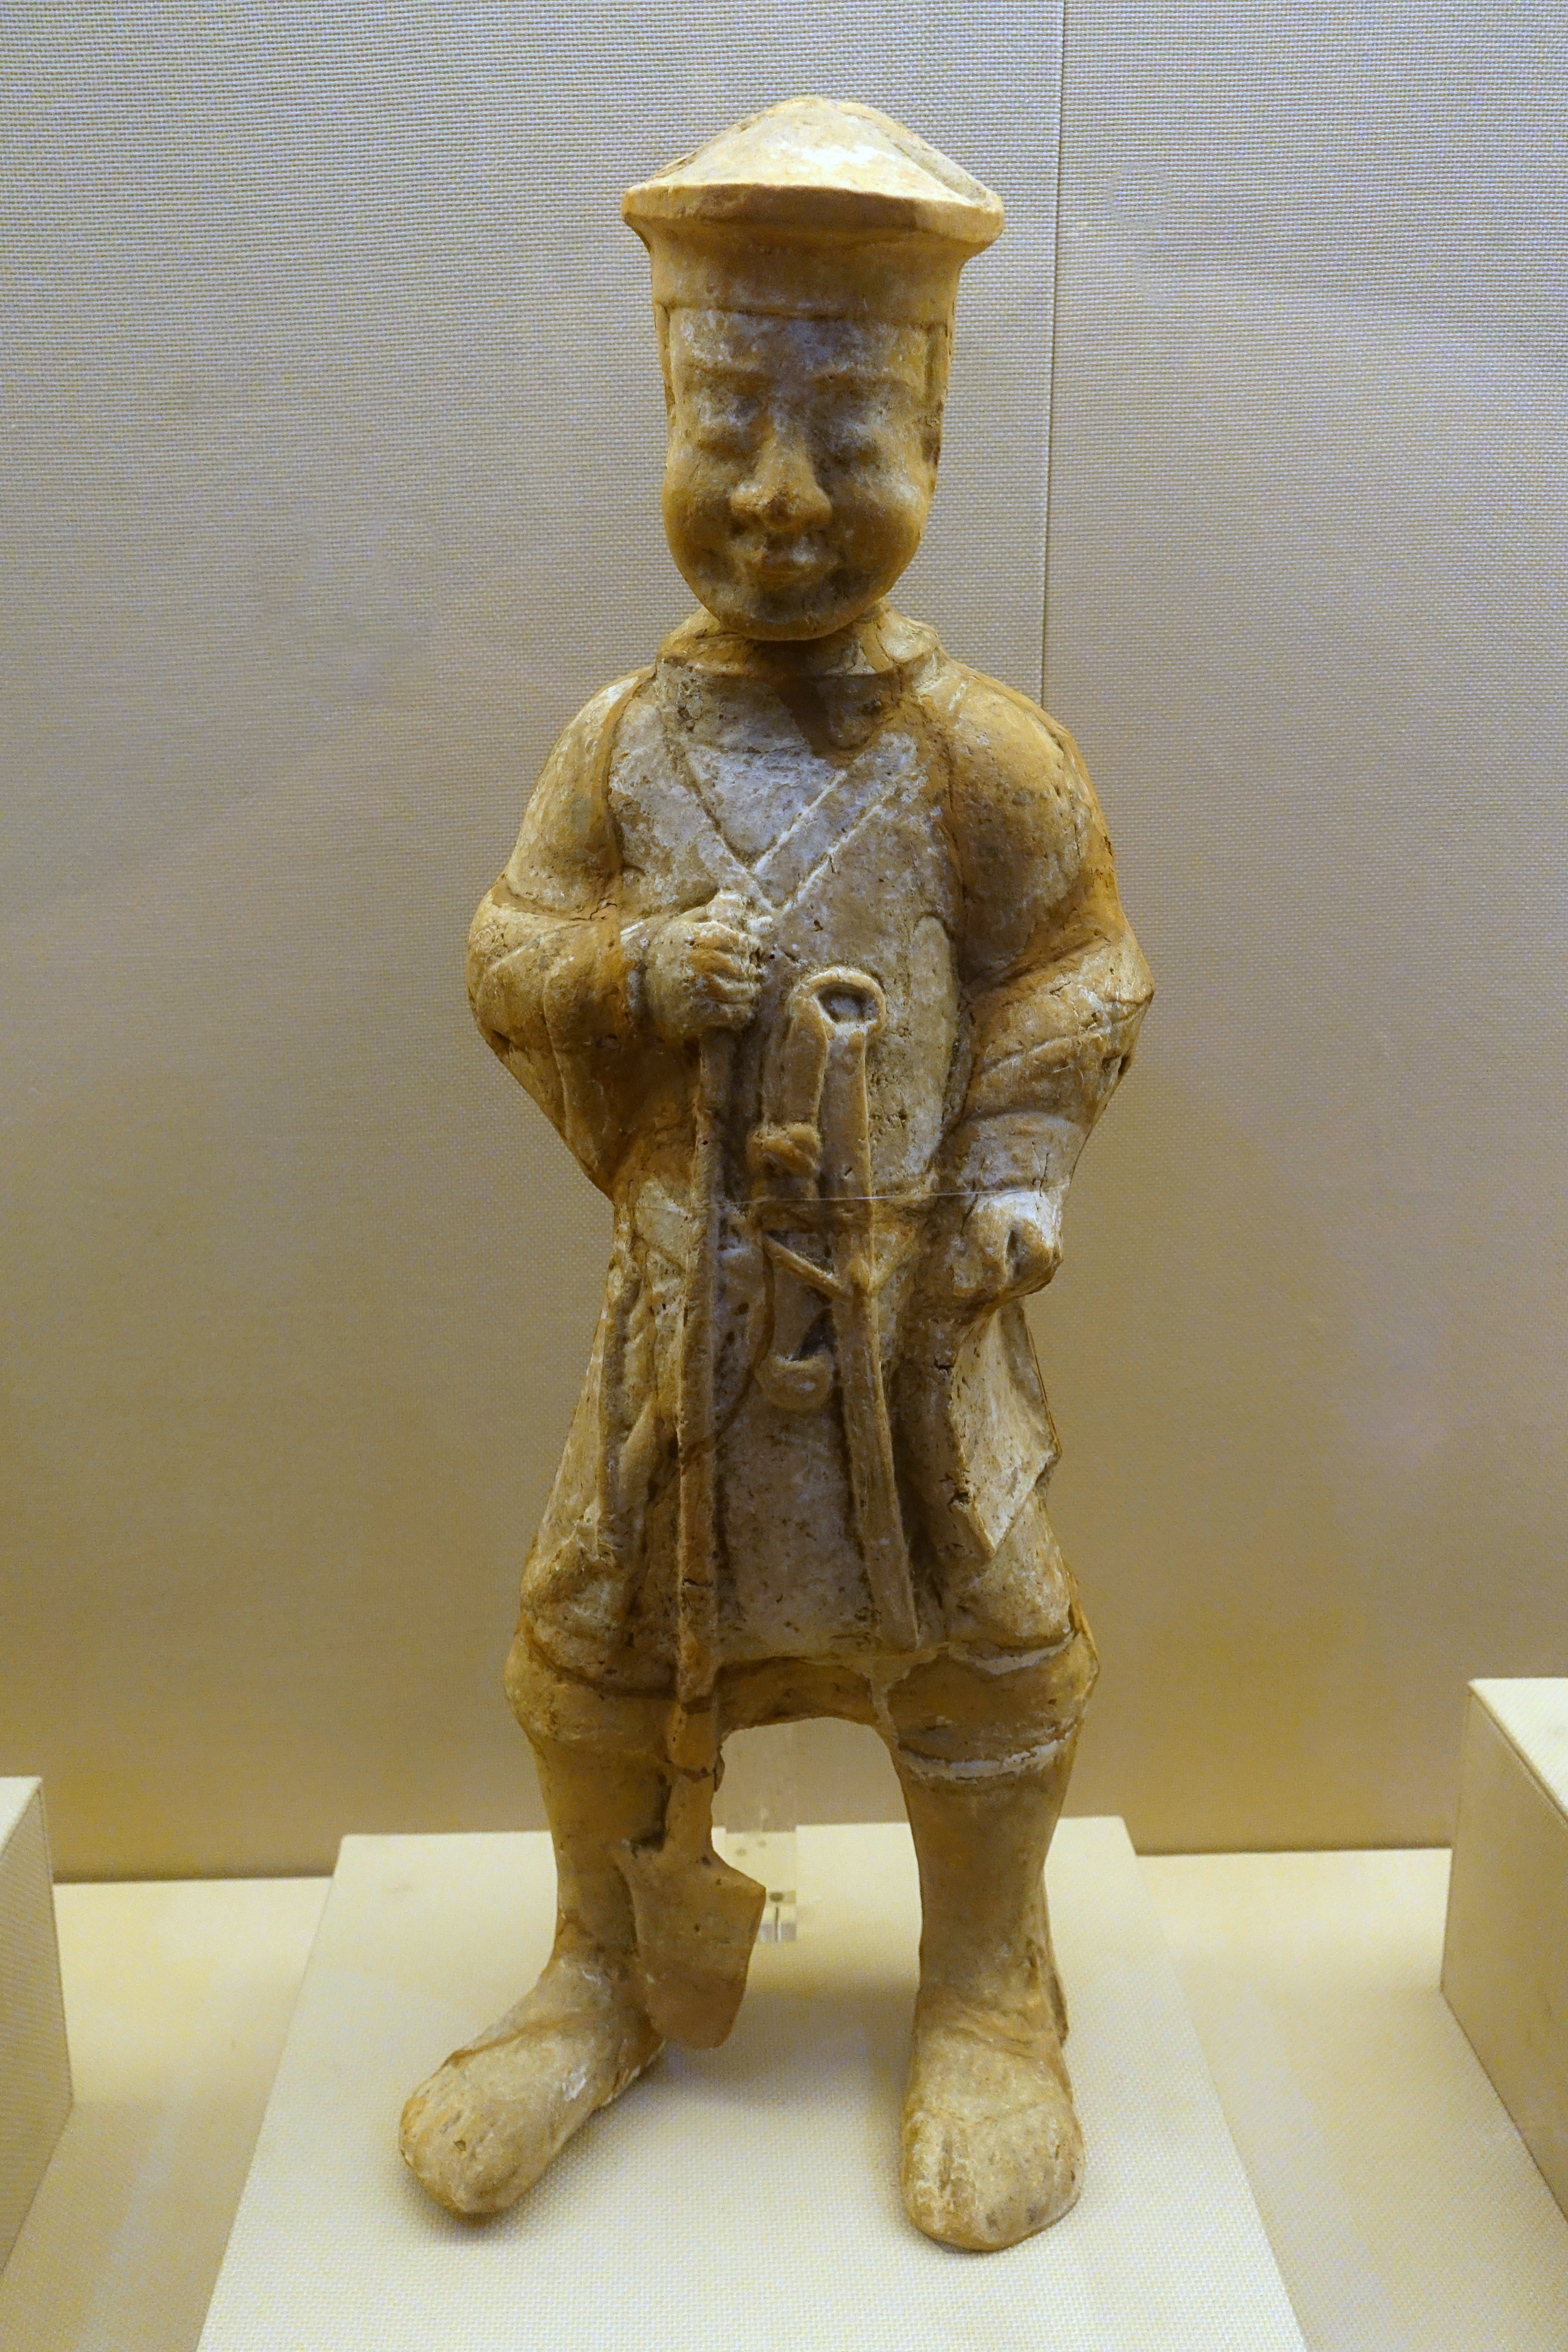 9c03920a4d87 Society and culture of the Han dynasty - Wikipedia